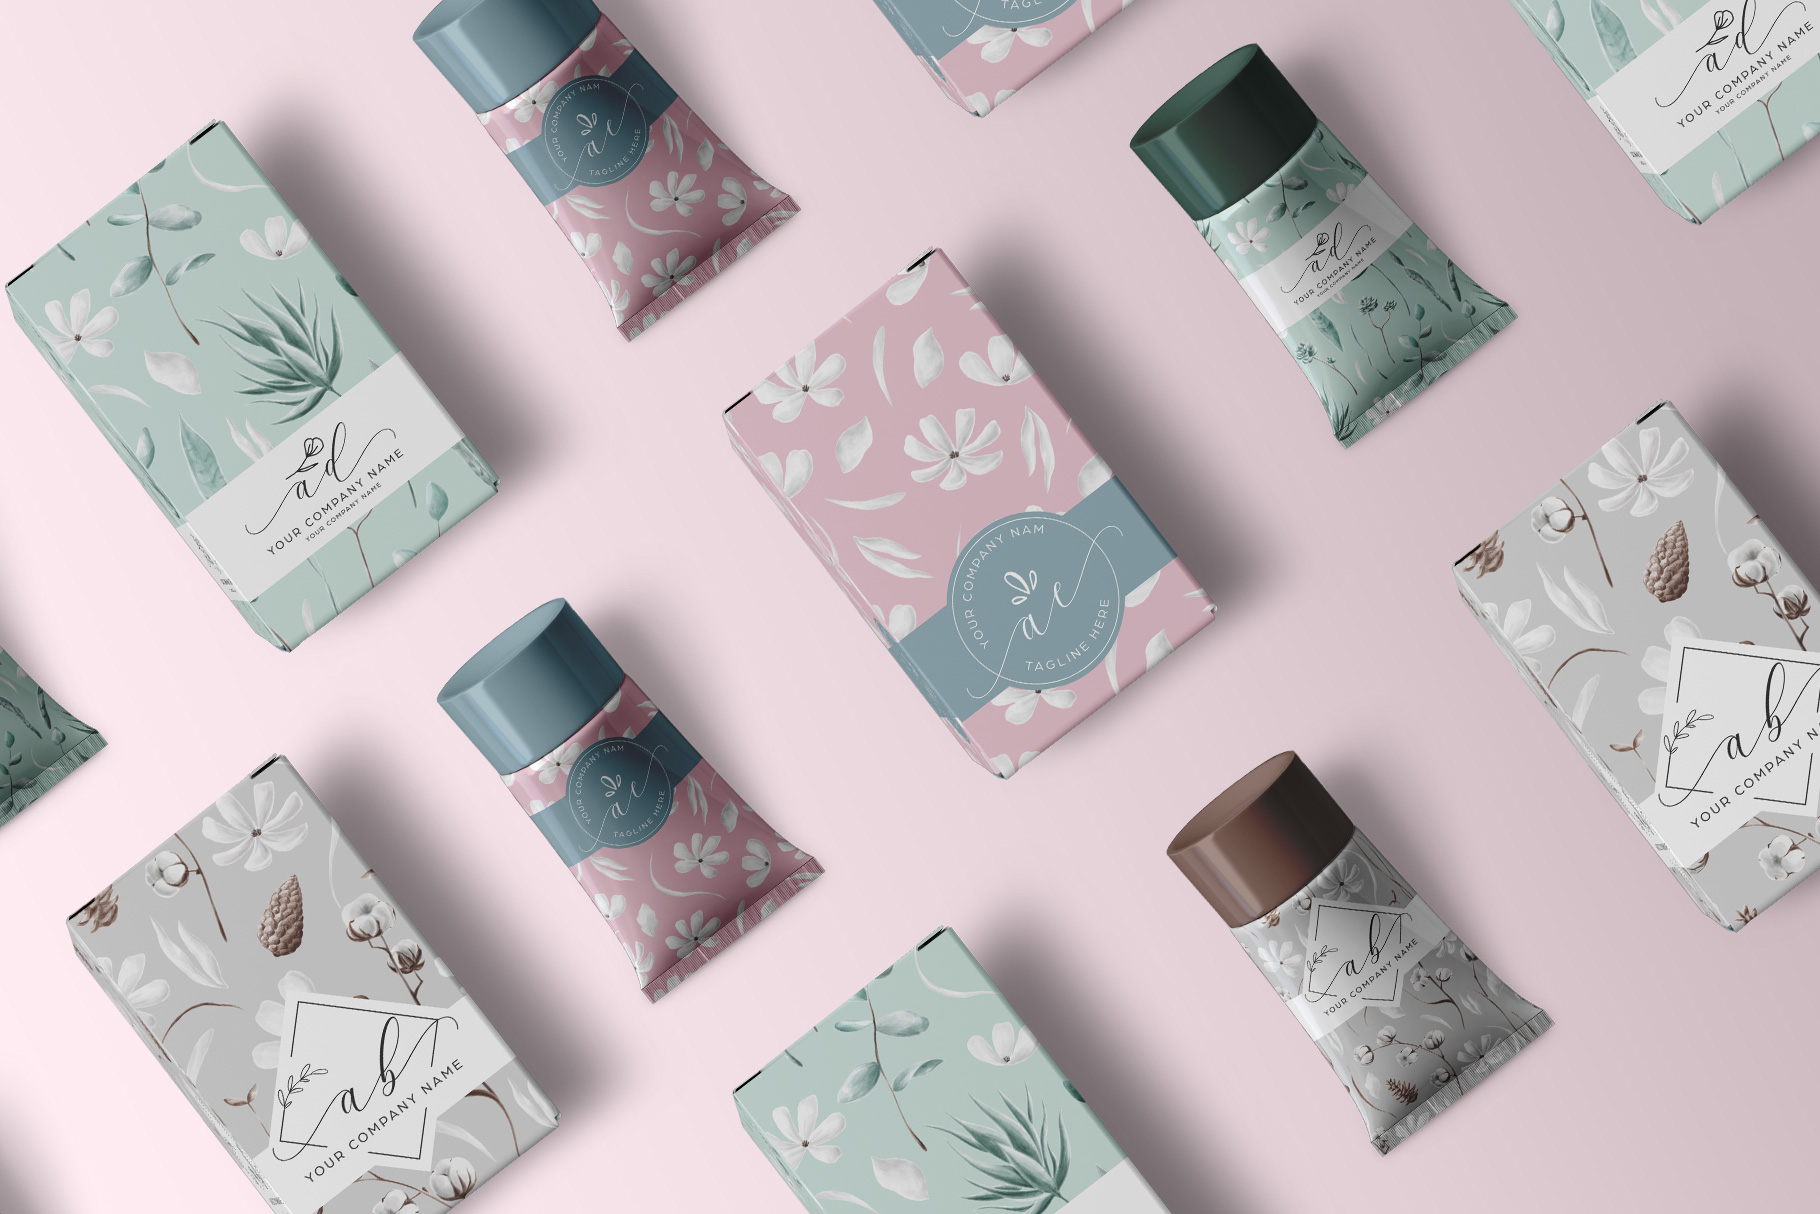 presentation of the top view cosmetic tube packaging mockup